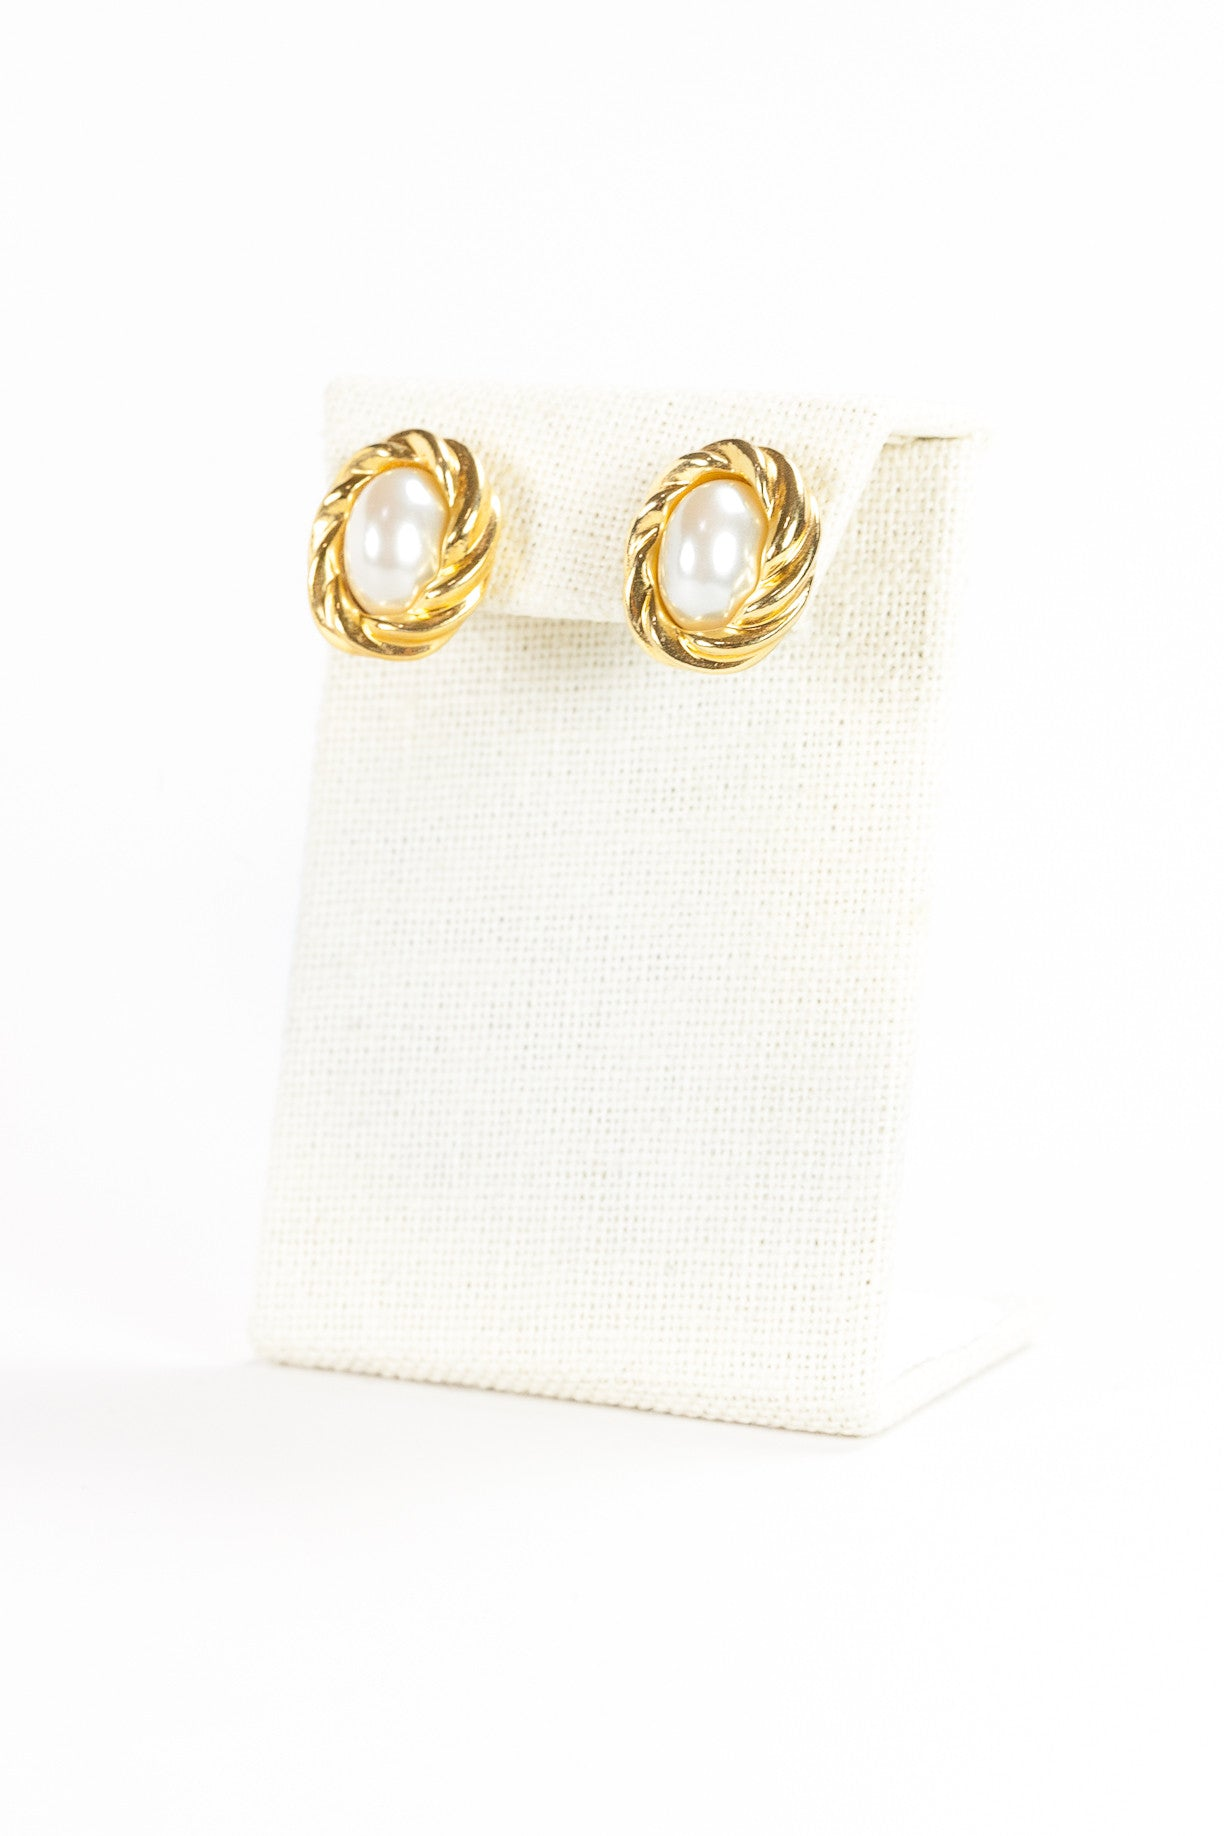 80's__KJL for Avon__Gold Pearl Earrings